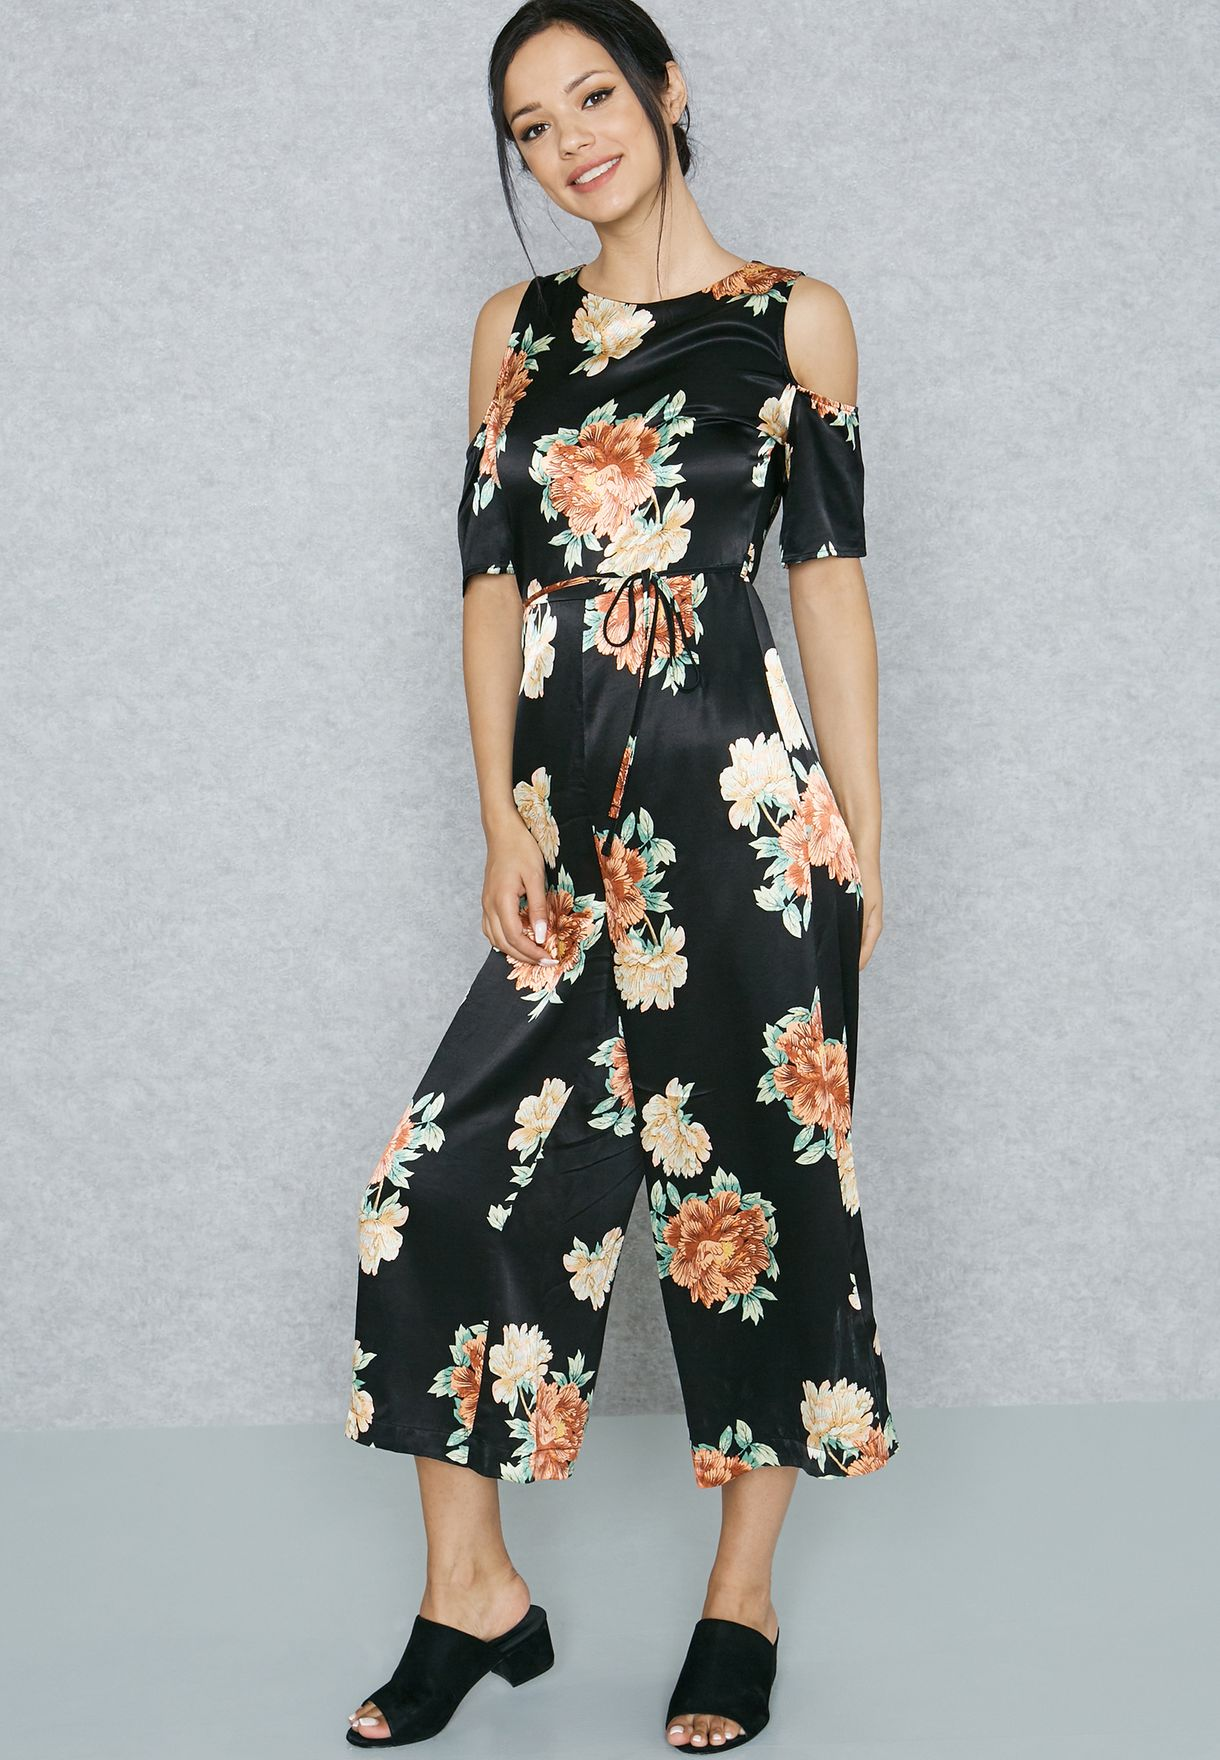 5780d56059c0 Shop Topshop black Floral Cold Shoulder Jumpsuit 16W38KBLK for Women in  Oman - TO856AT35SRO